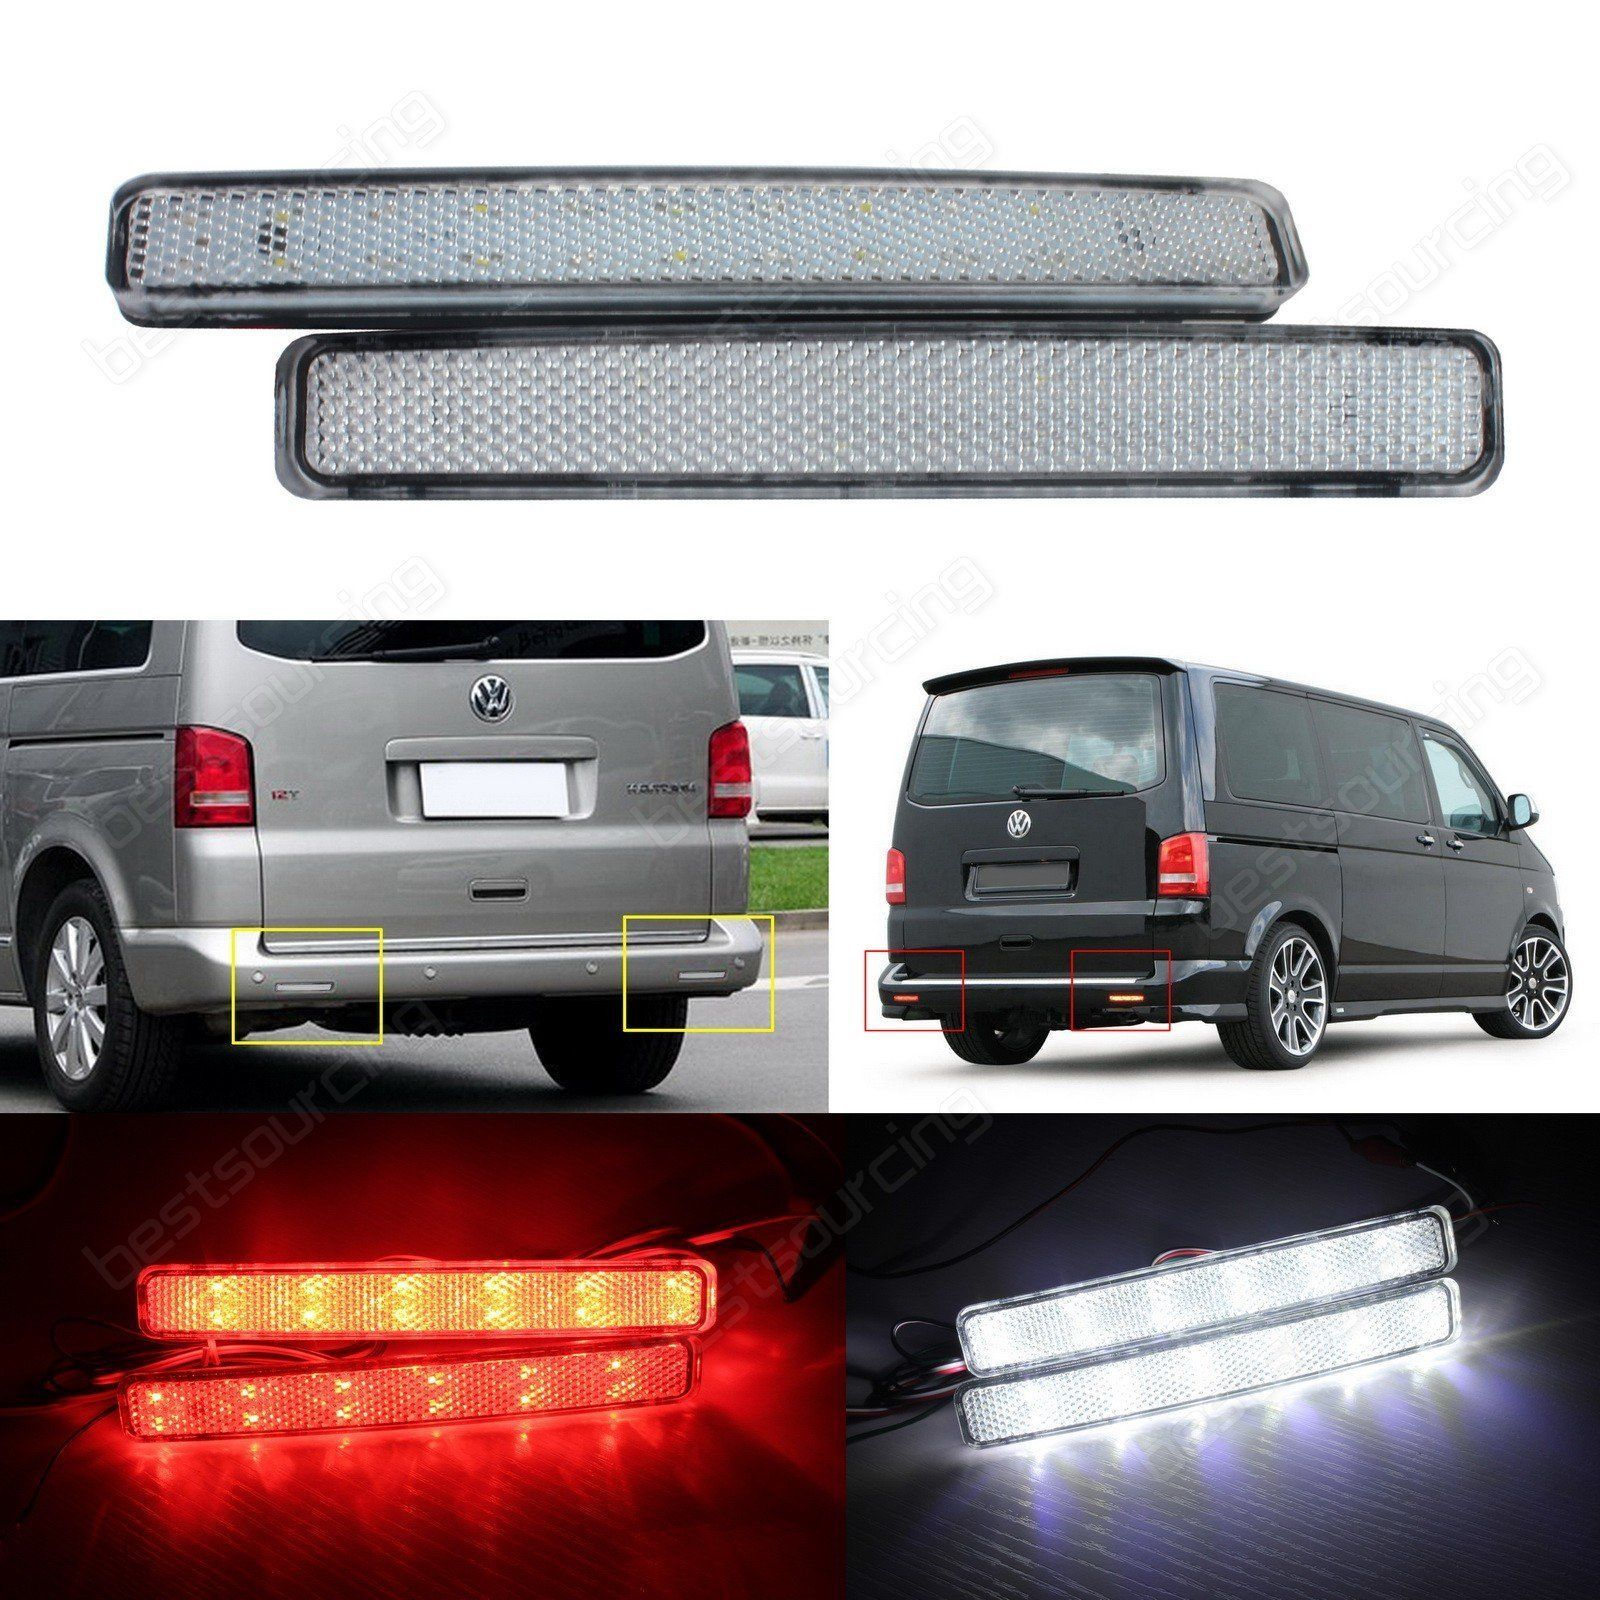 Vw Transporter T5 Led Rear Bumper Reflector Reverse Brake Stop Light Clear Lens Ebay Vw Transporter Transporter T5 Led